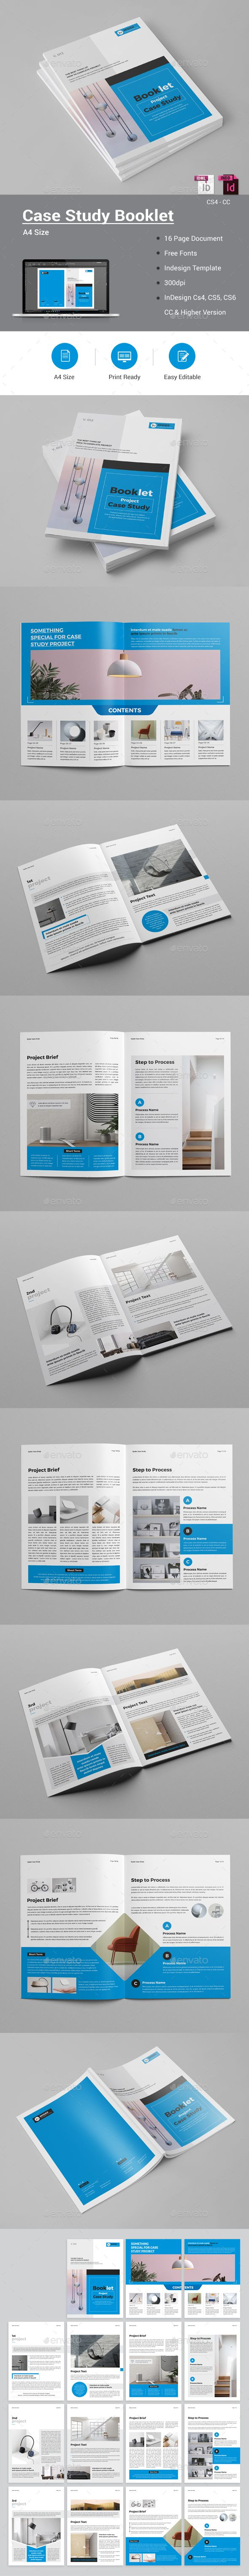 Case Study Booklet | Brochures, Brochure template and Booklet template